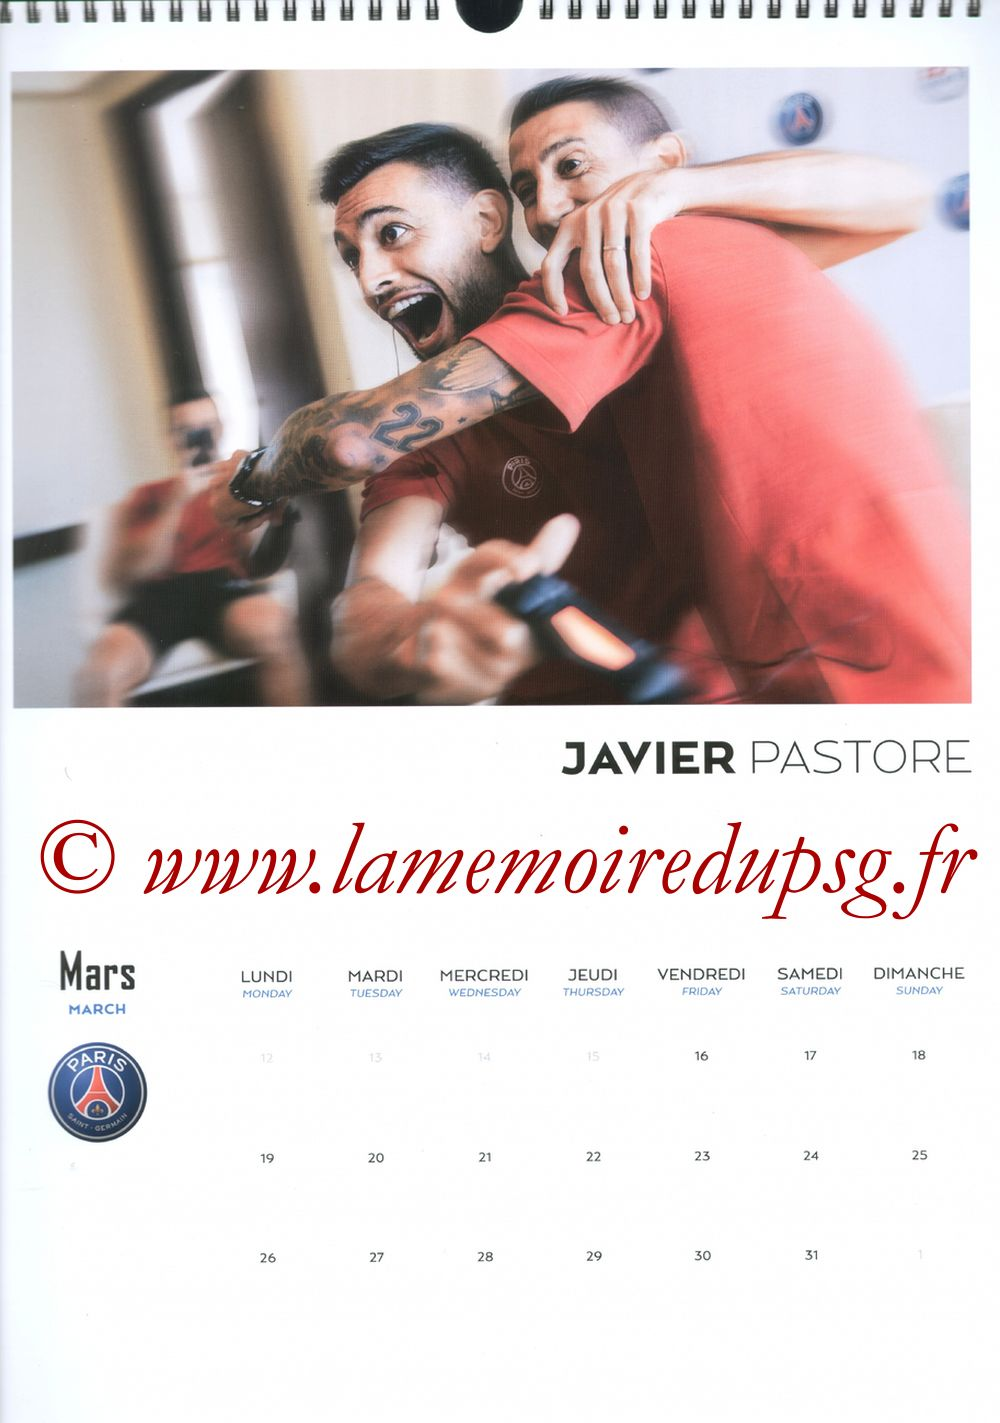 Calendrier PSG 2018 - Page 06 - Javier PASTORE